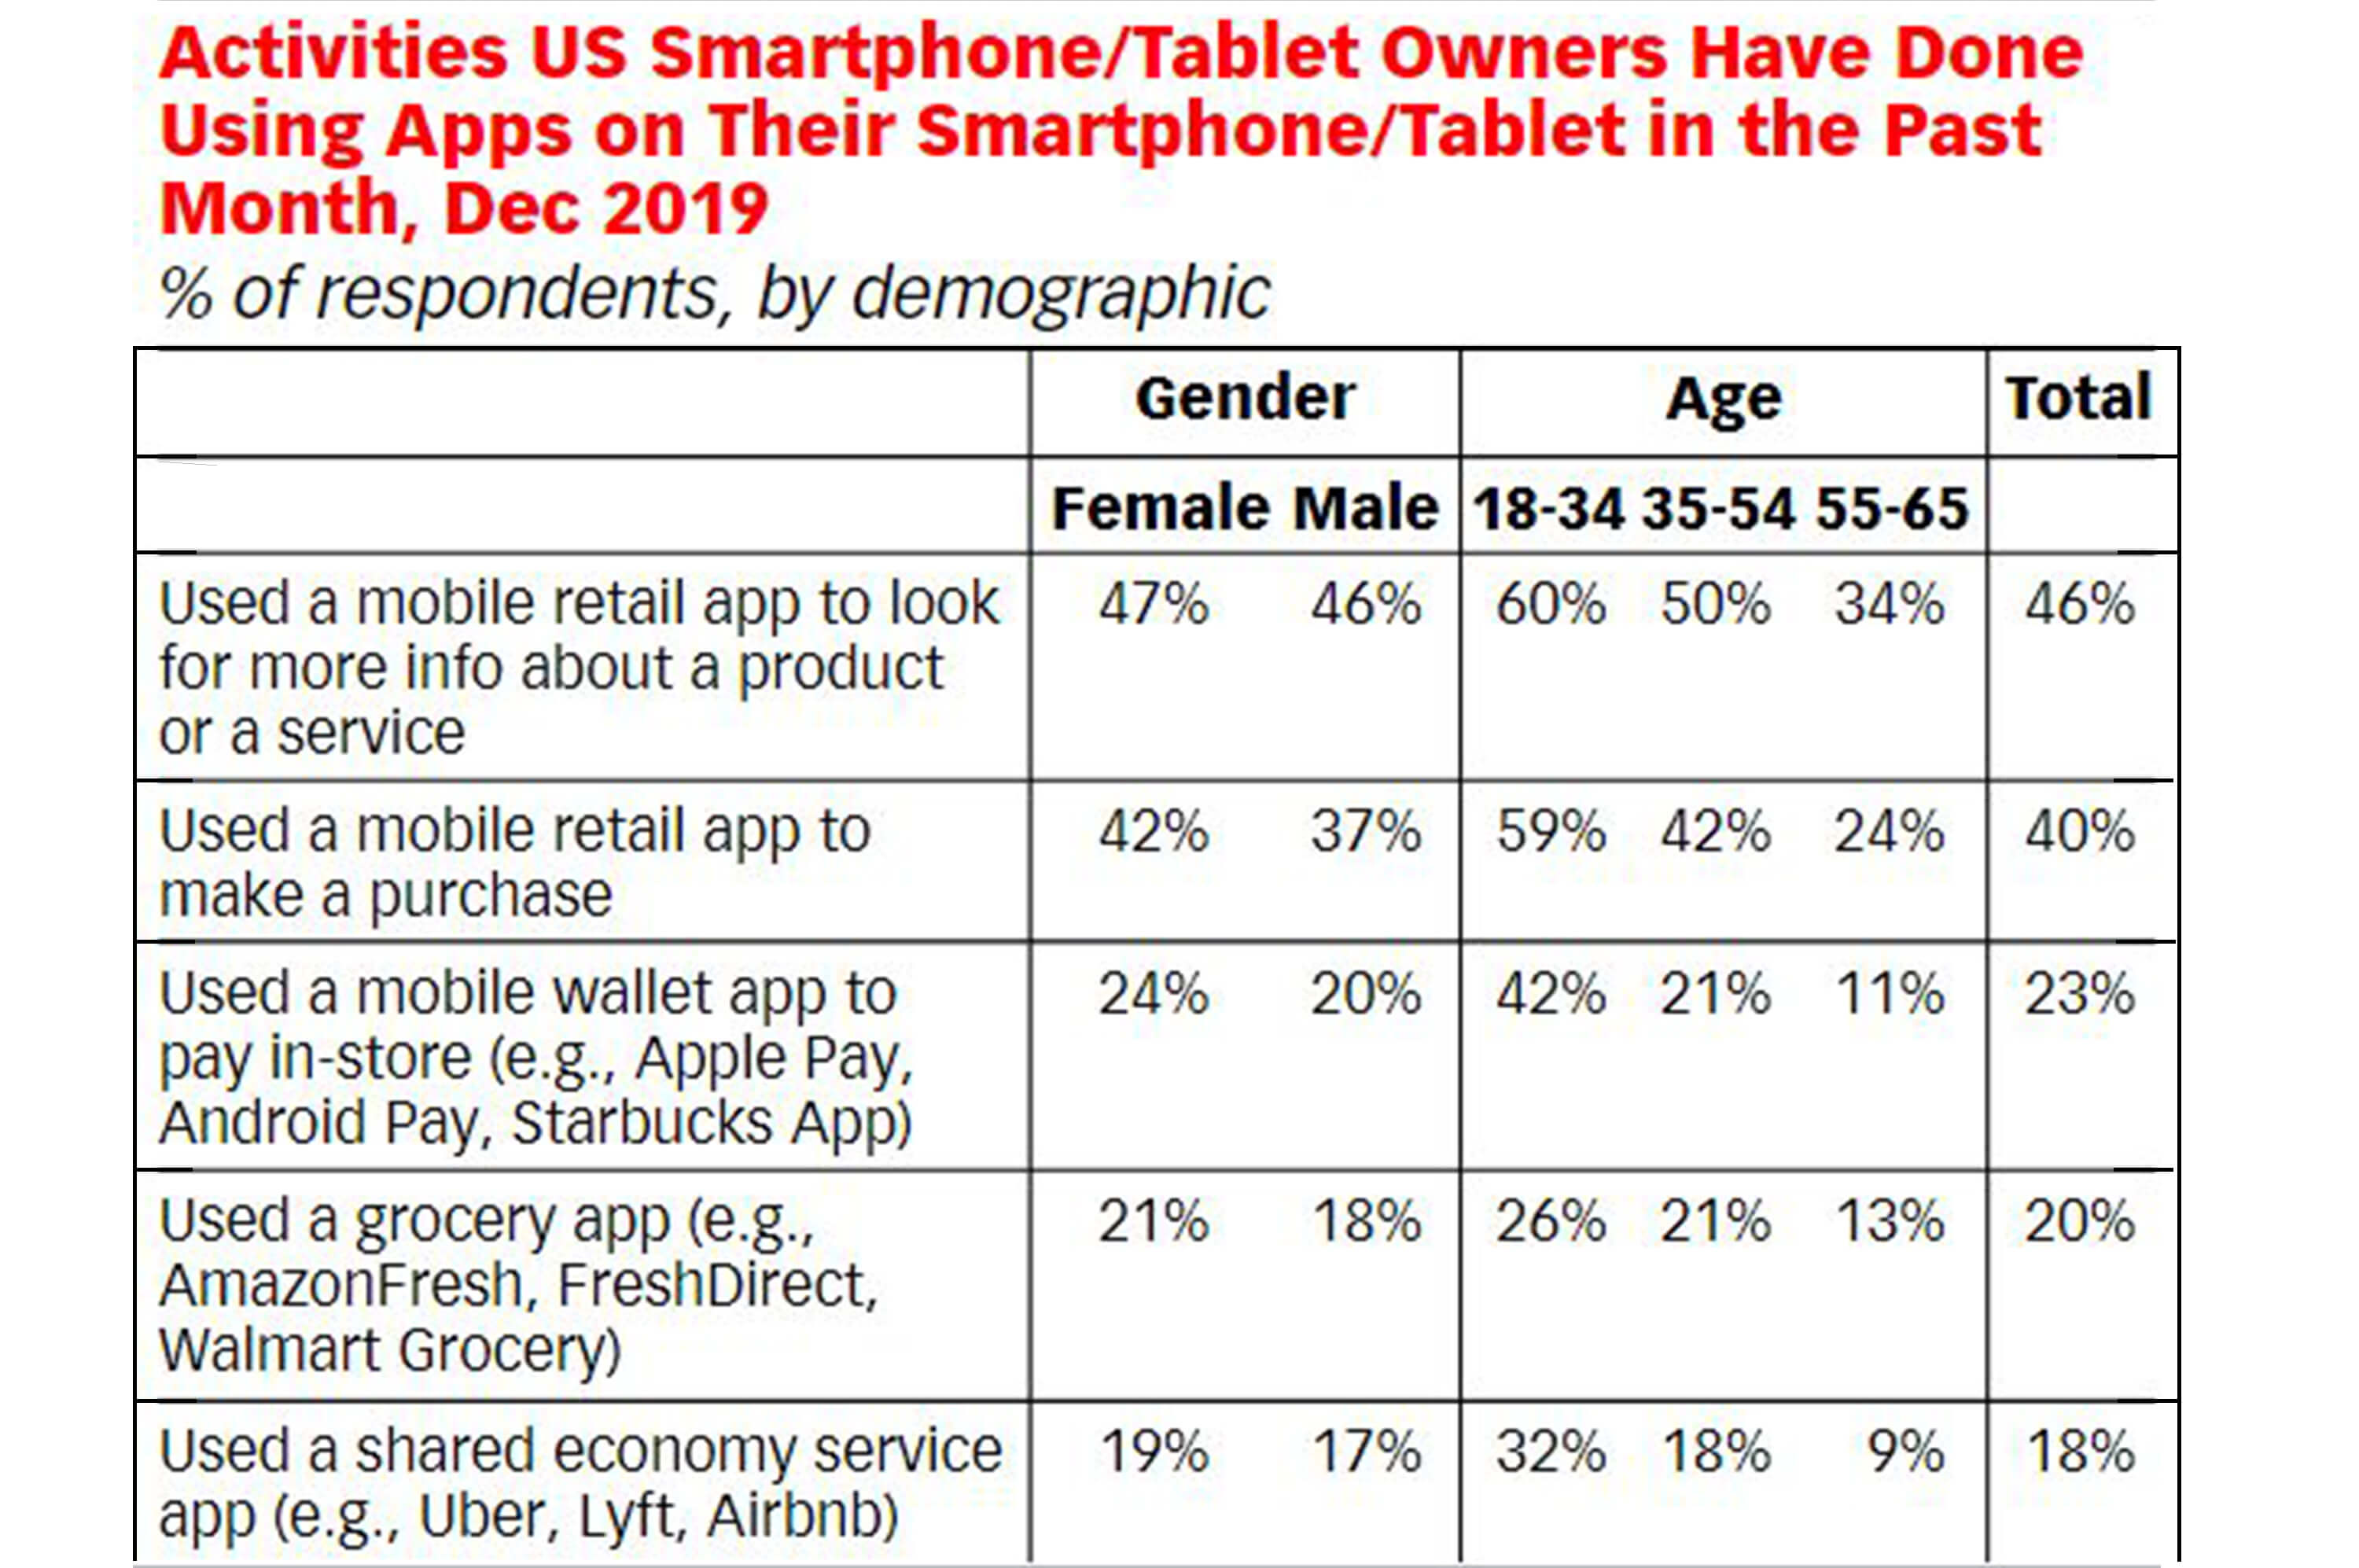 a statistic about united state smartphone / tablet owners have done using using their gadgets